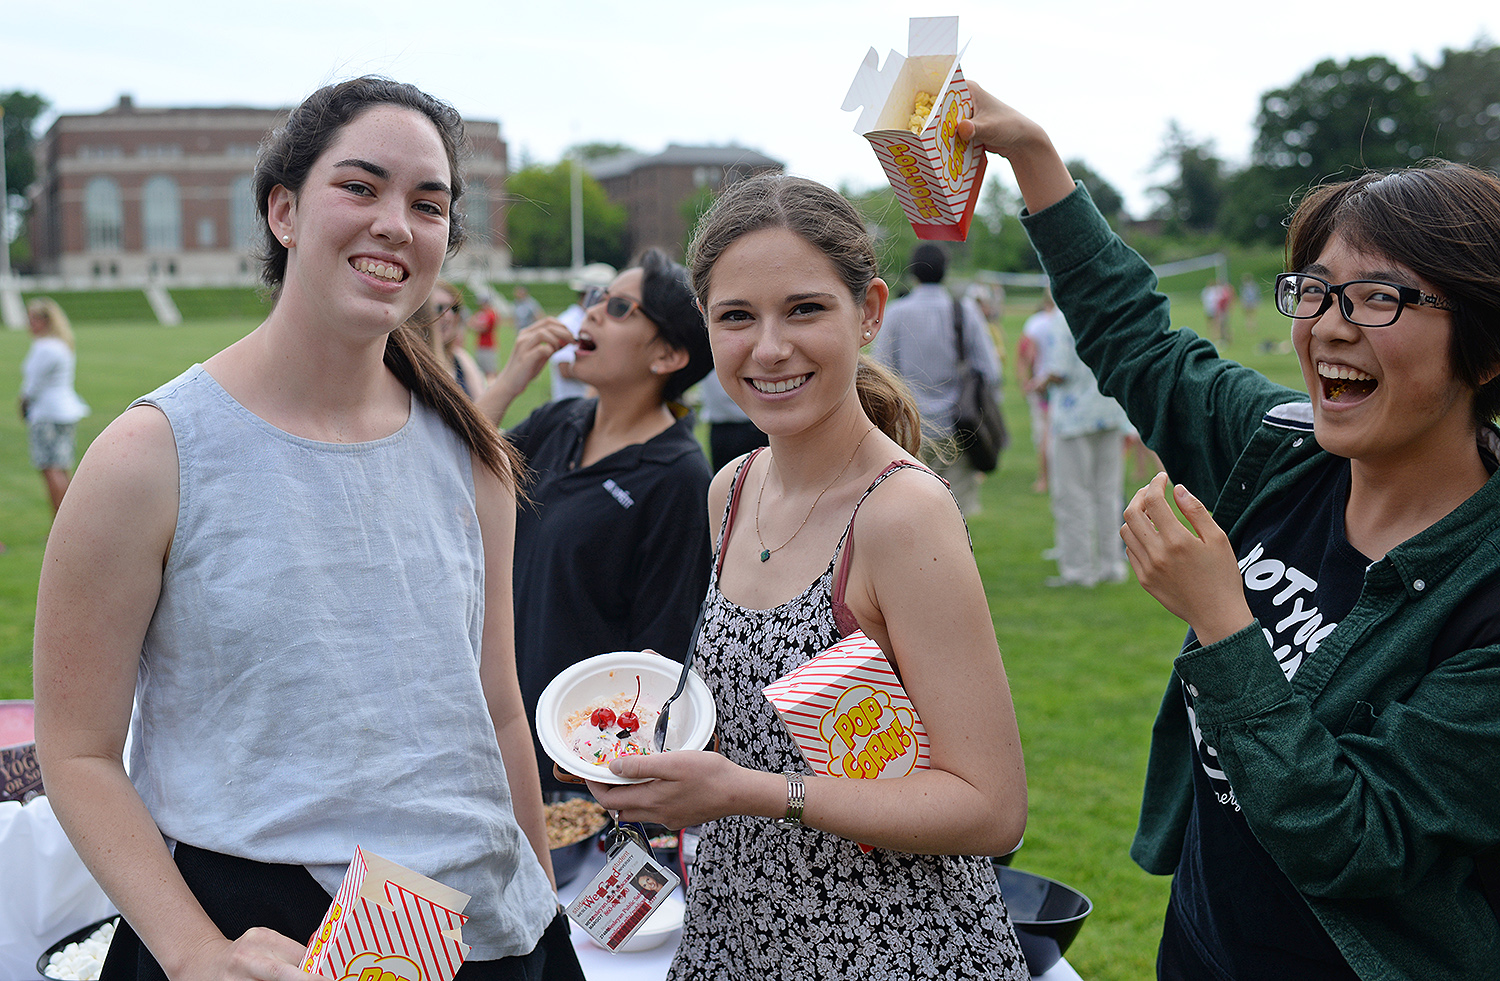 On June 1, the Office of Human Resources hosted an Ice Cream Social for faculty, staff and employed students on Andrus Field and the Huss Courtyard.